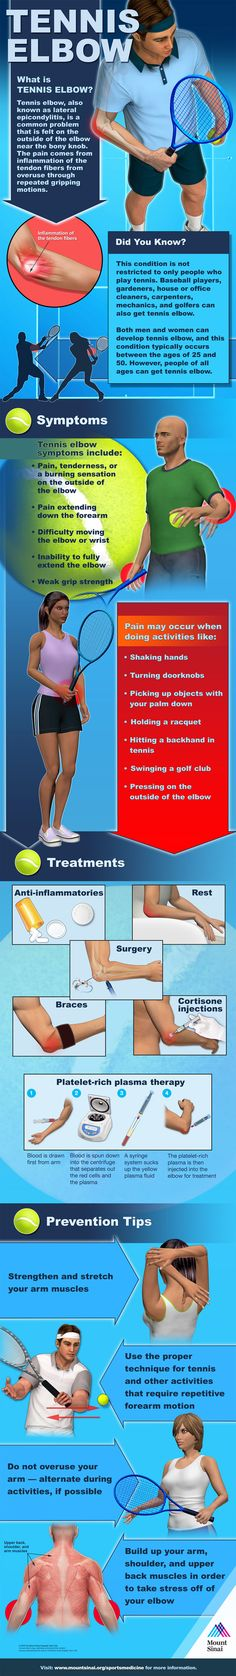 Have you ever dealt with frustrating wrist pain or carpal tunnel or tennis elbow or golfers elbow or climbers elbow pain that is aggravated by typing and computer work? Workout Belt, Tennis Workout, Workout Abs, Workout Exercises, Fitness Exercises, Workout Fitness, Fit Board Workouts, At Home Workouts, Workout Board